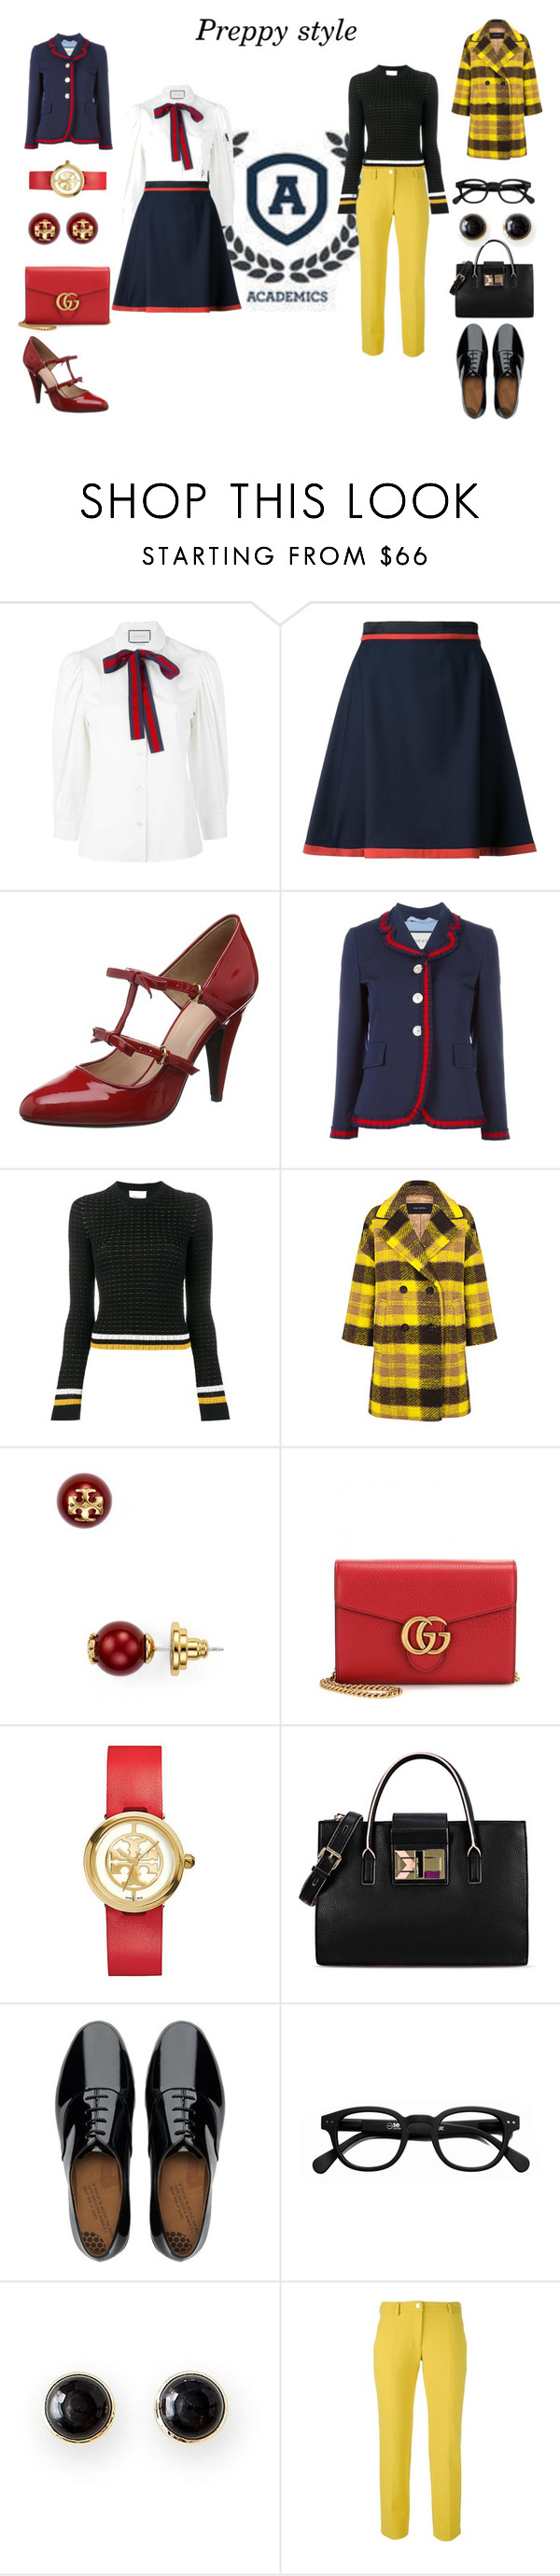 """Preppy style"" by lulochka ❤ liked on Polyvore featuring Gucci, Loveless, Boutique Moschino, 3.1 Phillip Lim, Pink Tartan, Tory Burch, Karl Lagerfeld, FitFlop, See Concept and Mark & Graham"